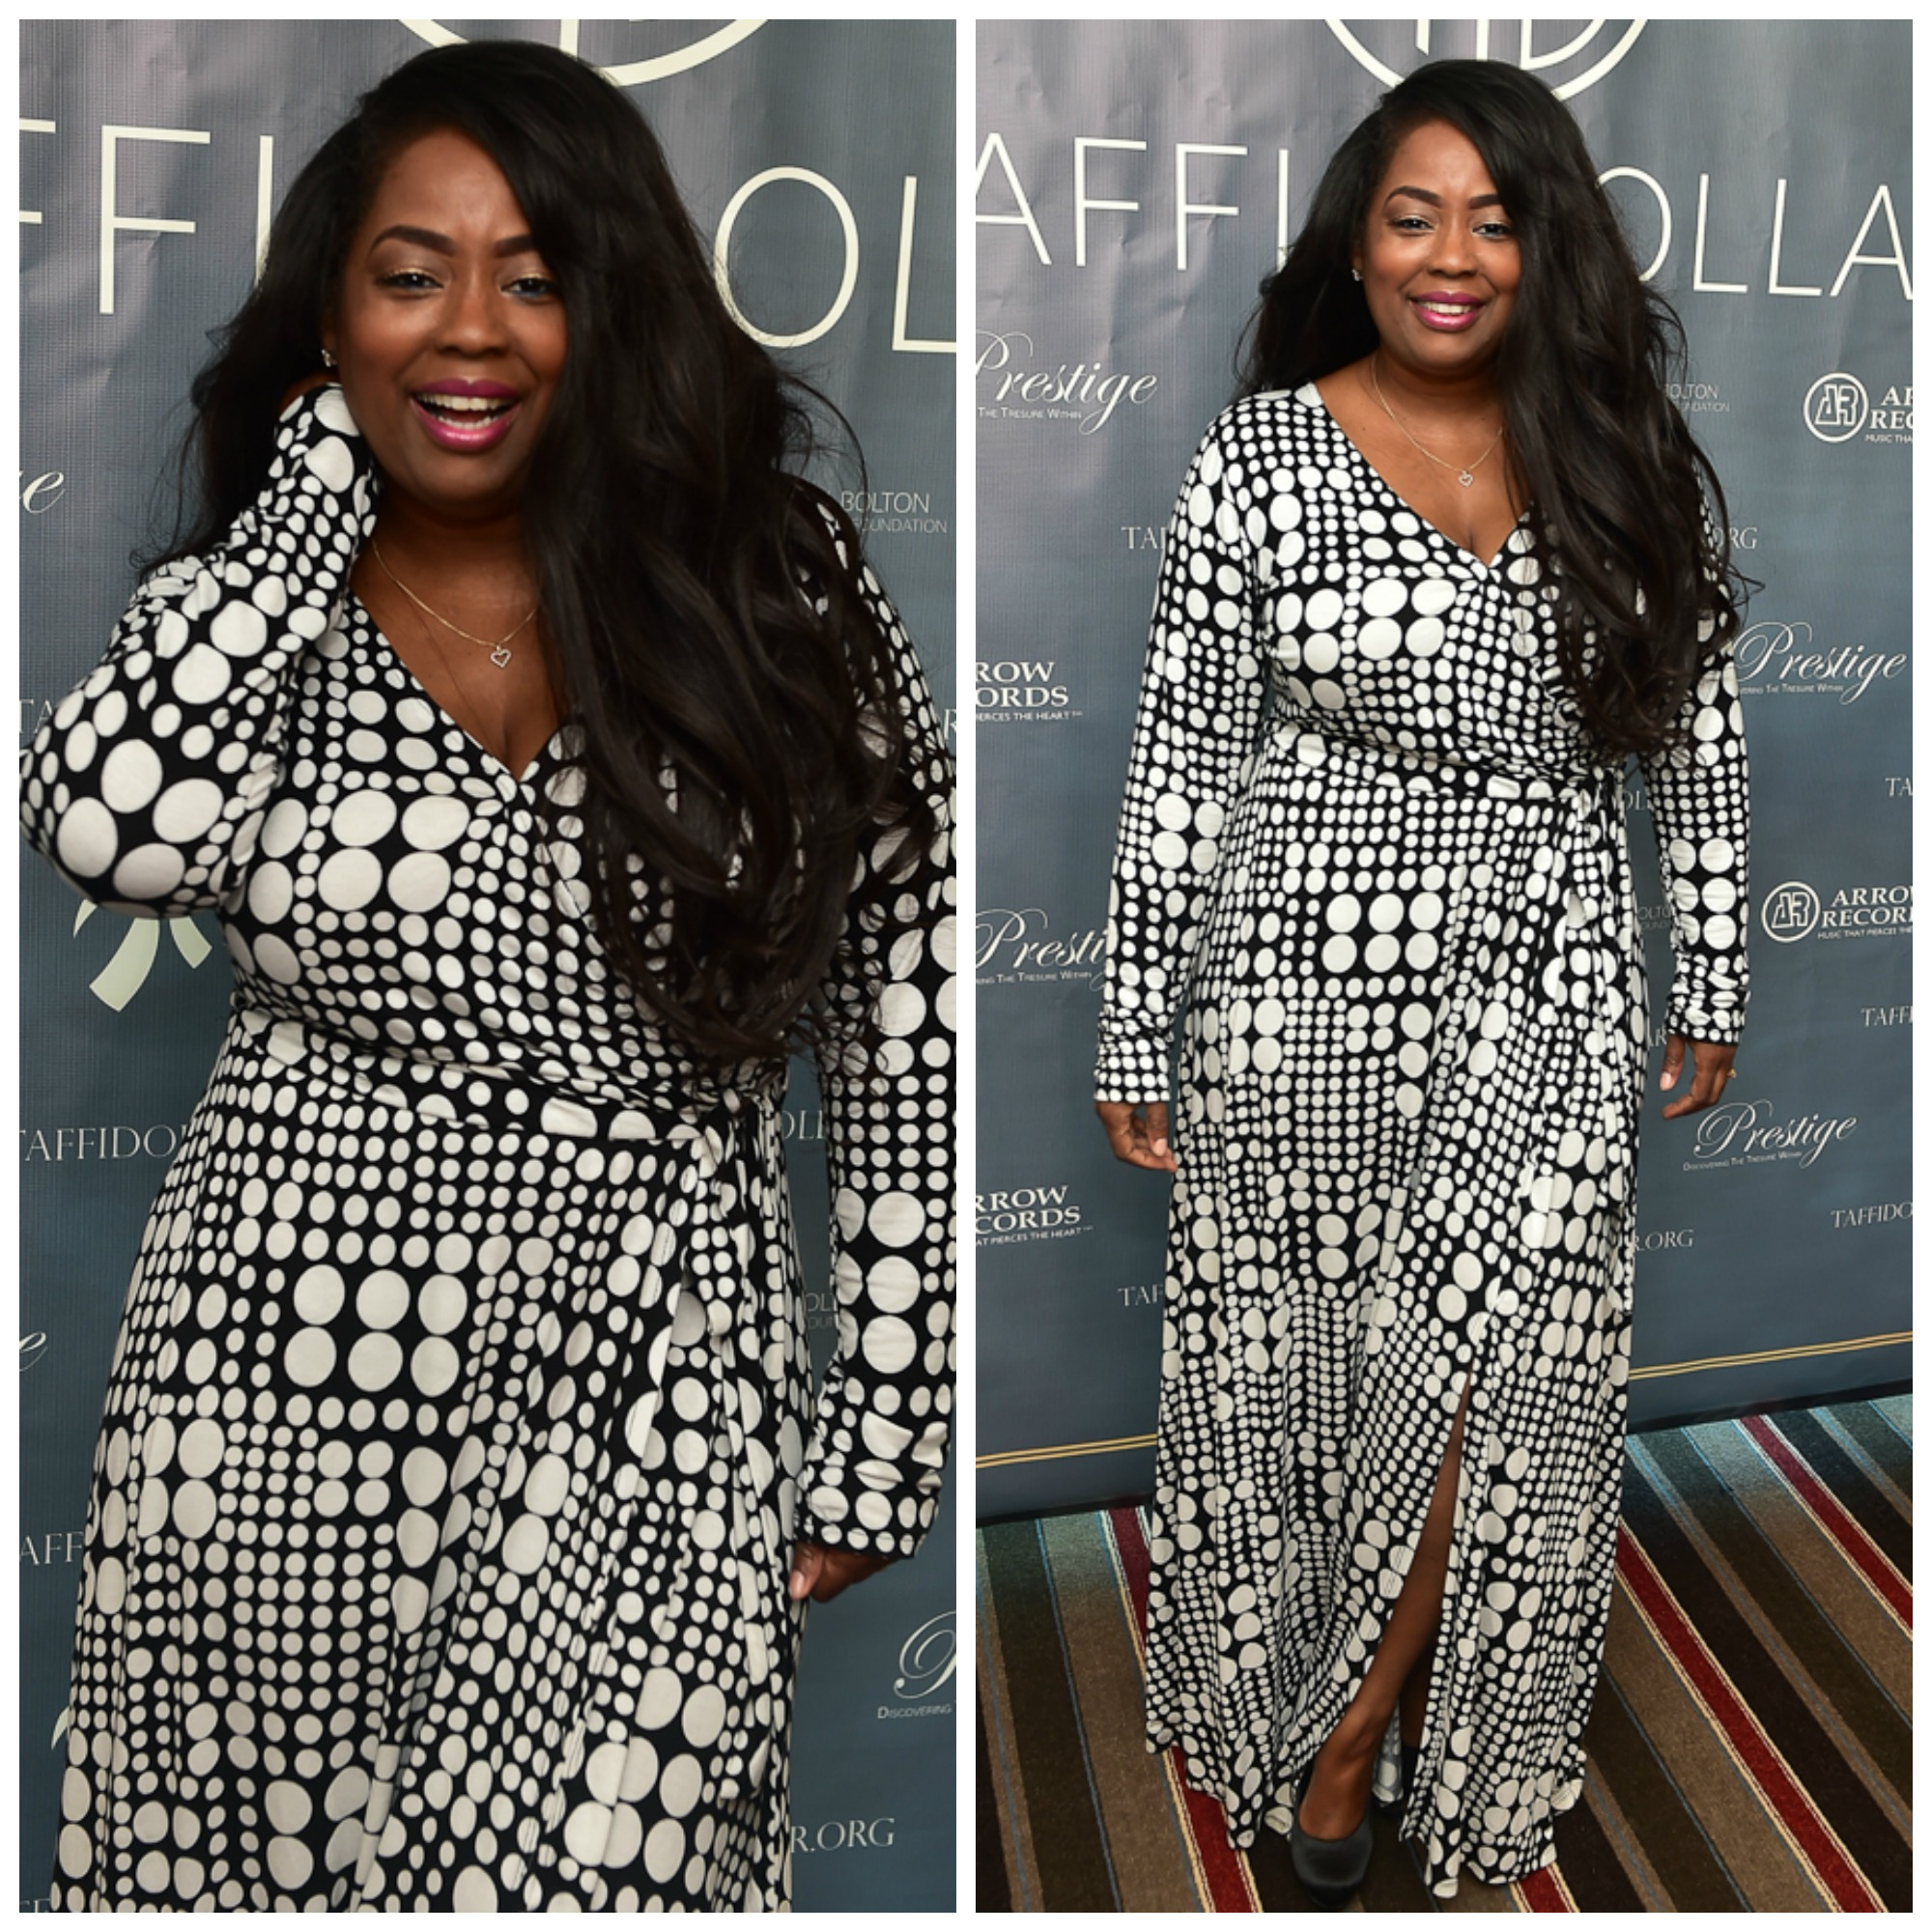 My Style: Chic & Curvy Dotted Wrap Maxi Dress